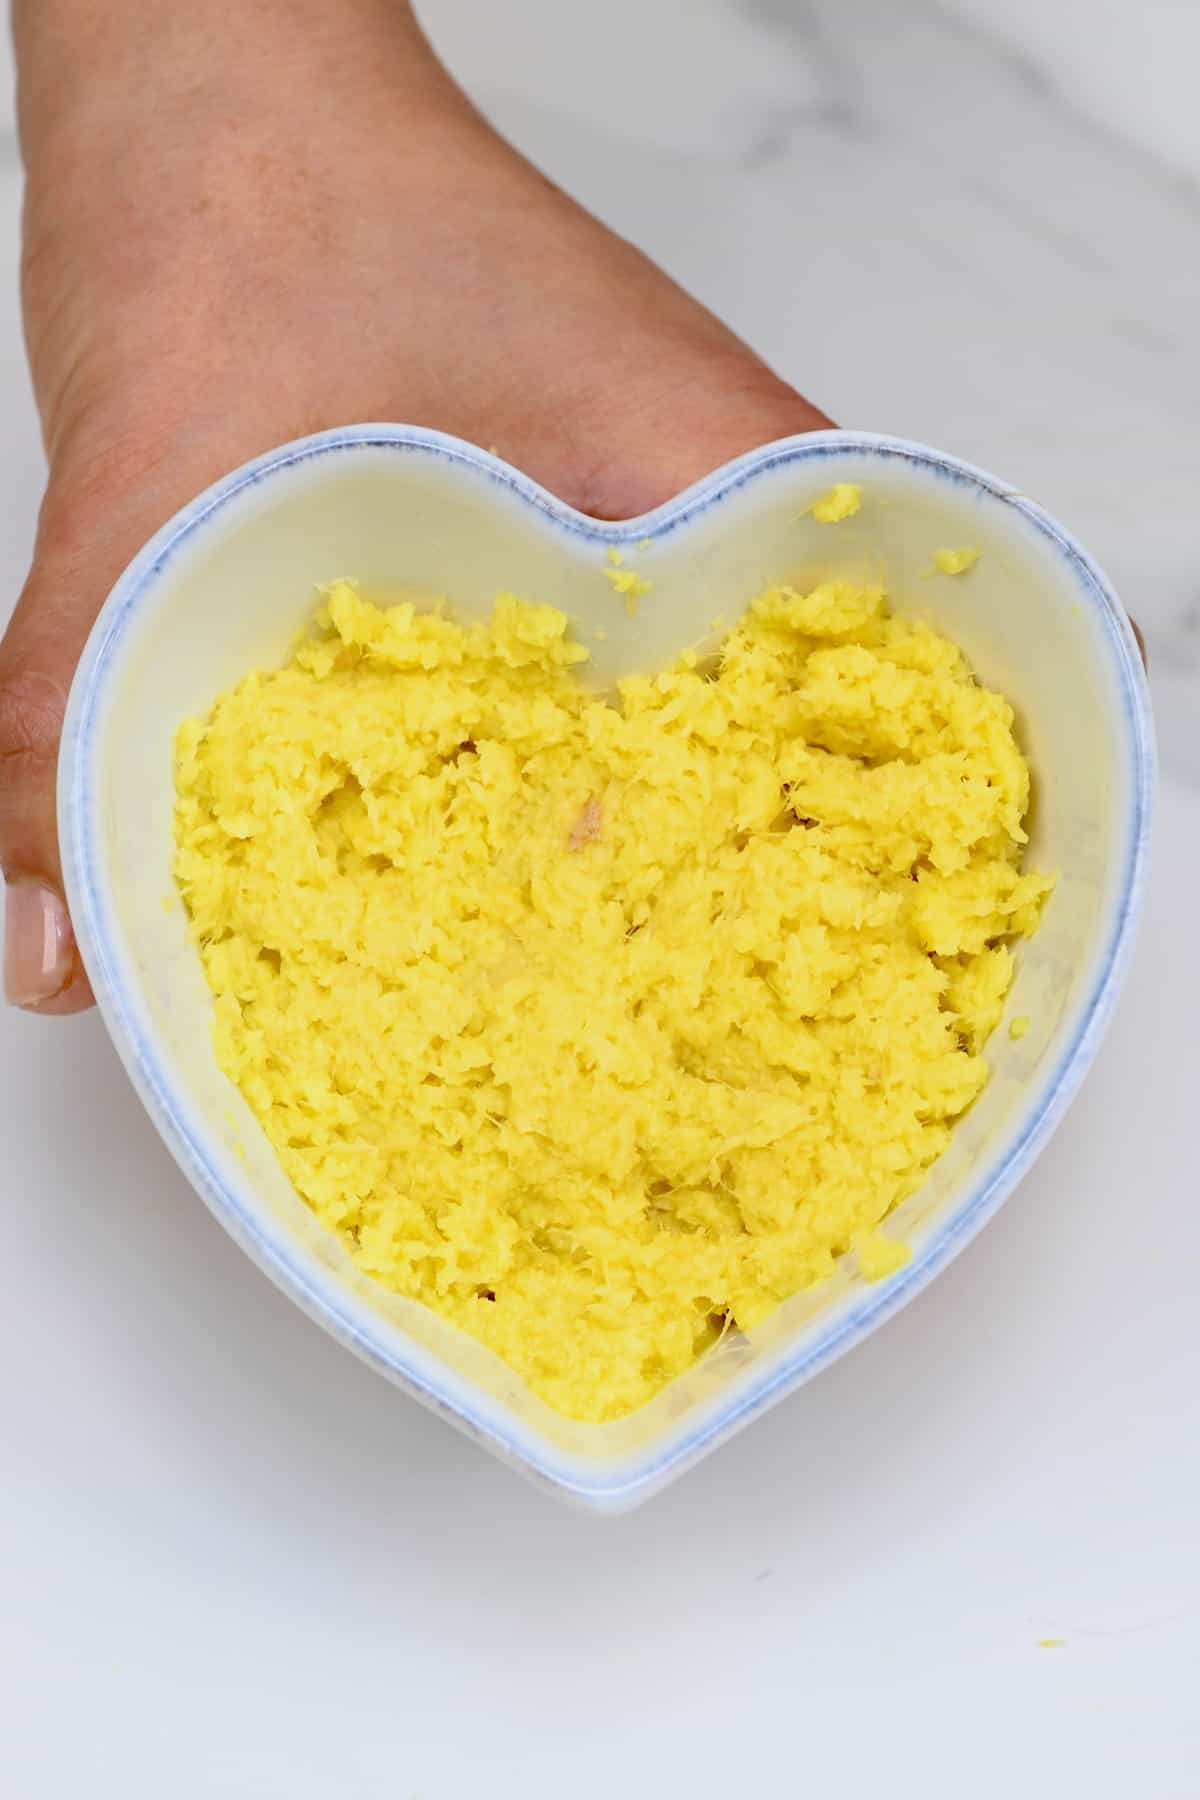 Ginger paste in a heart-shaped bowl